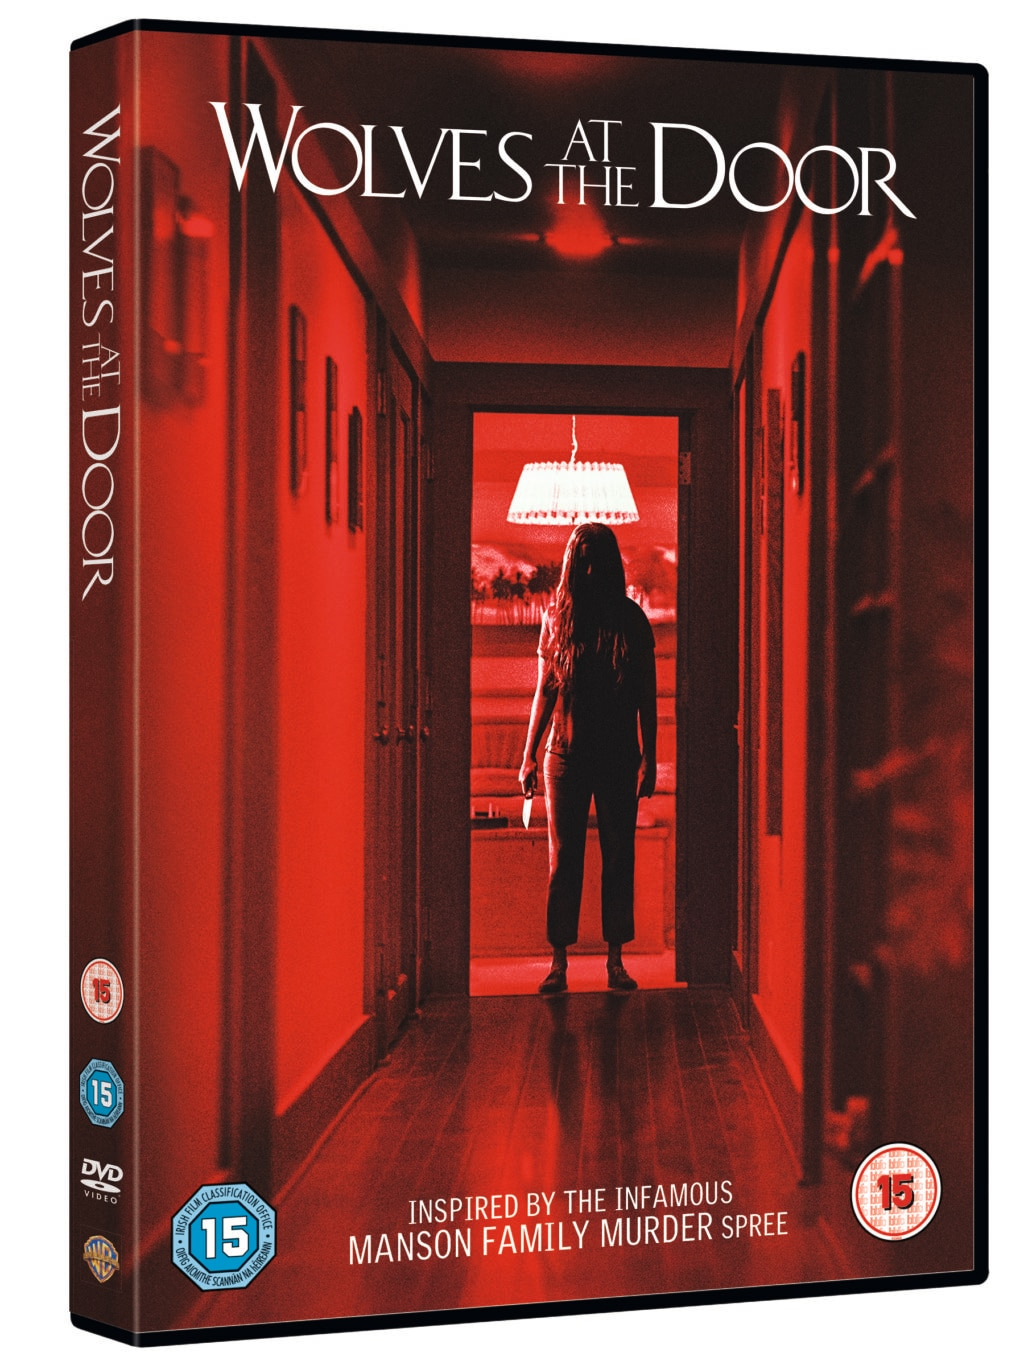 Wolves at the Door UK DVD 1024x1365 - UK Readers: Win Wolves at the Door on DVD!